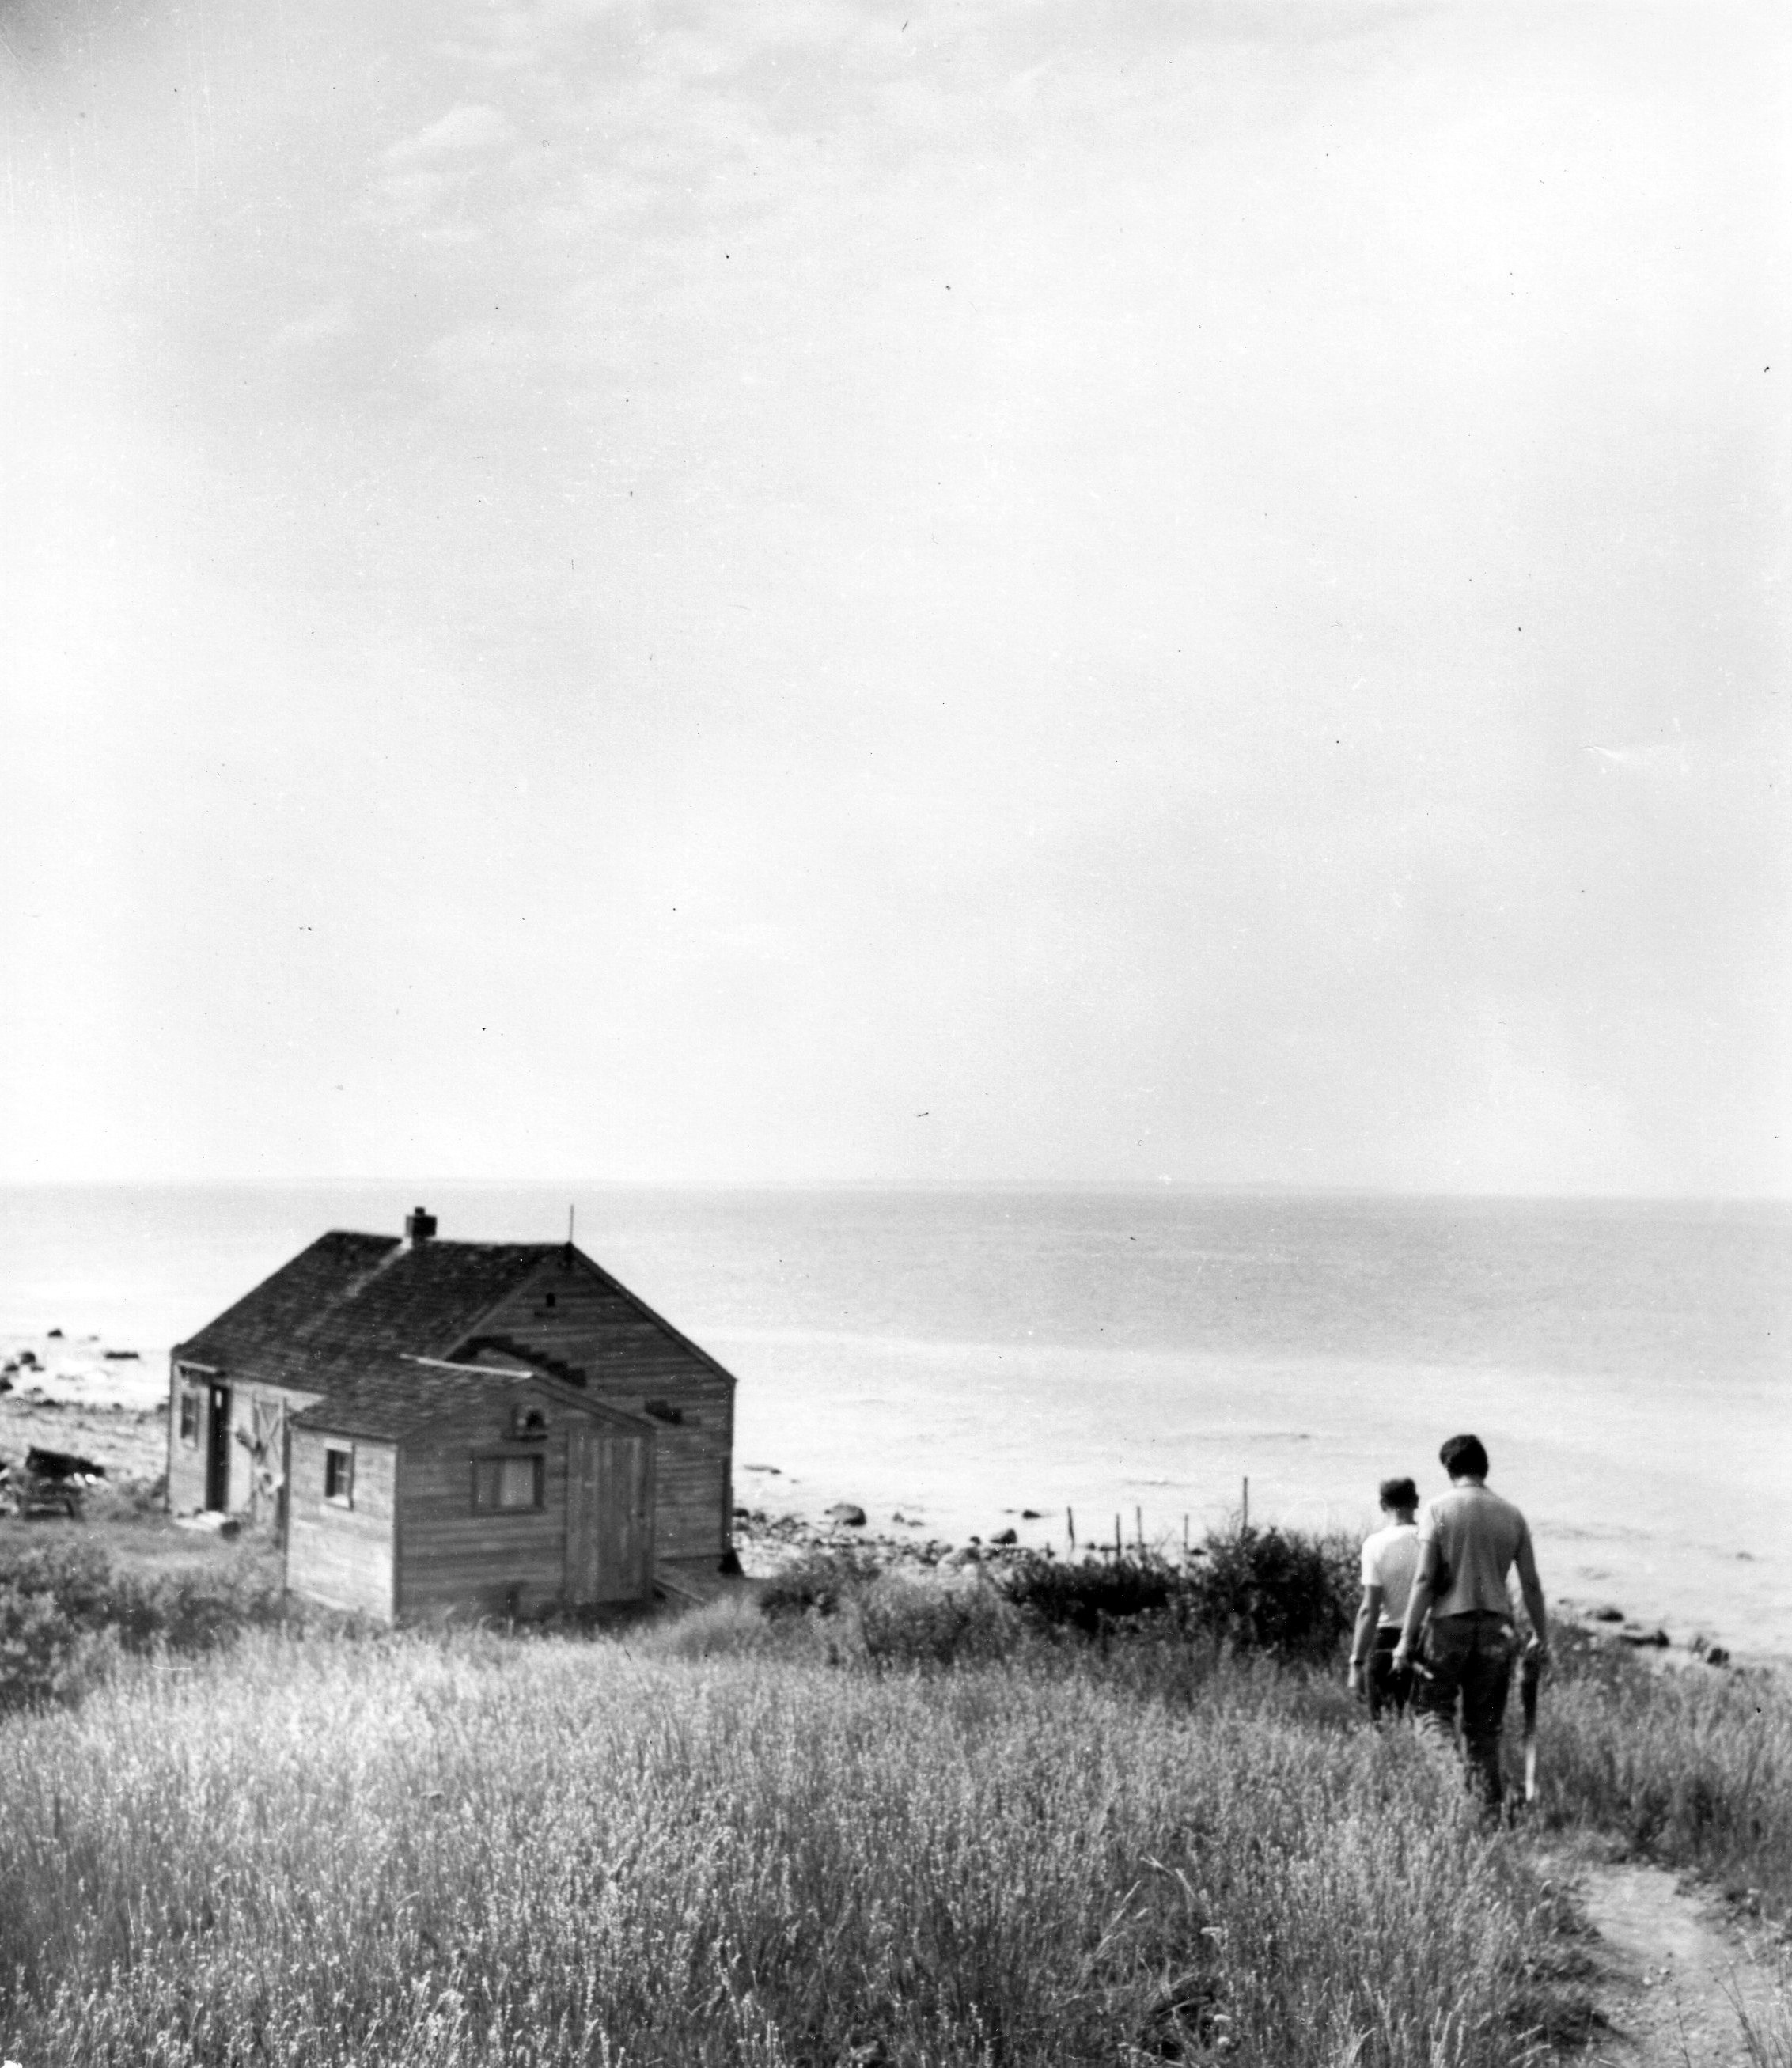 The small cottage that will be moved from the Brooks-Park property to the Pollock-Krasner House is pictured here when it was located on a bayside bluff in Montauk. The two men walking toward it in this photo, taken by Hans Namuth in 1950, are the artists James Brooks and Jackson Pollock.